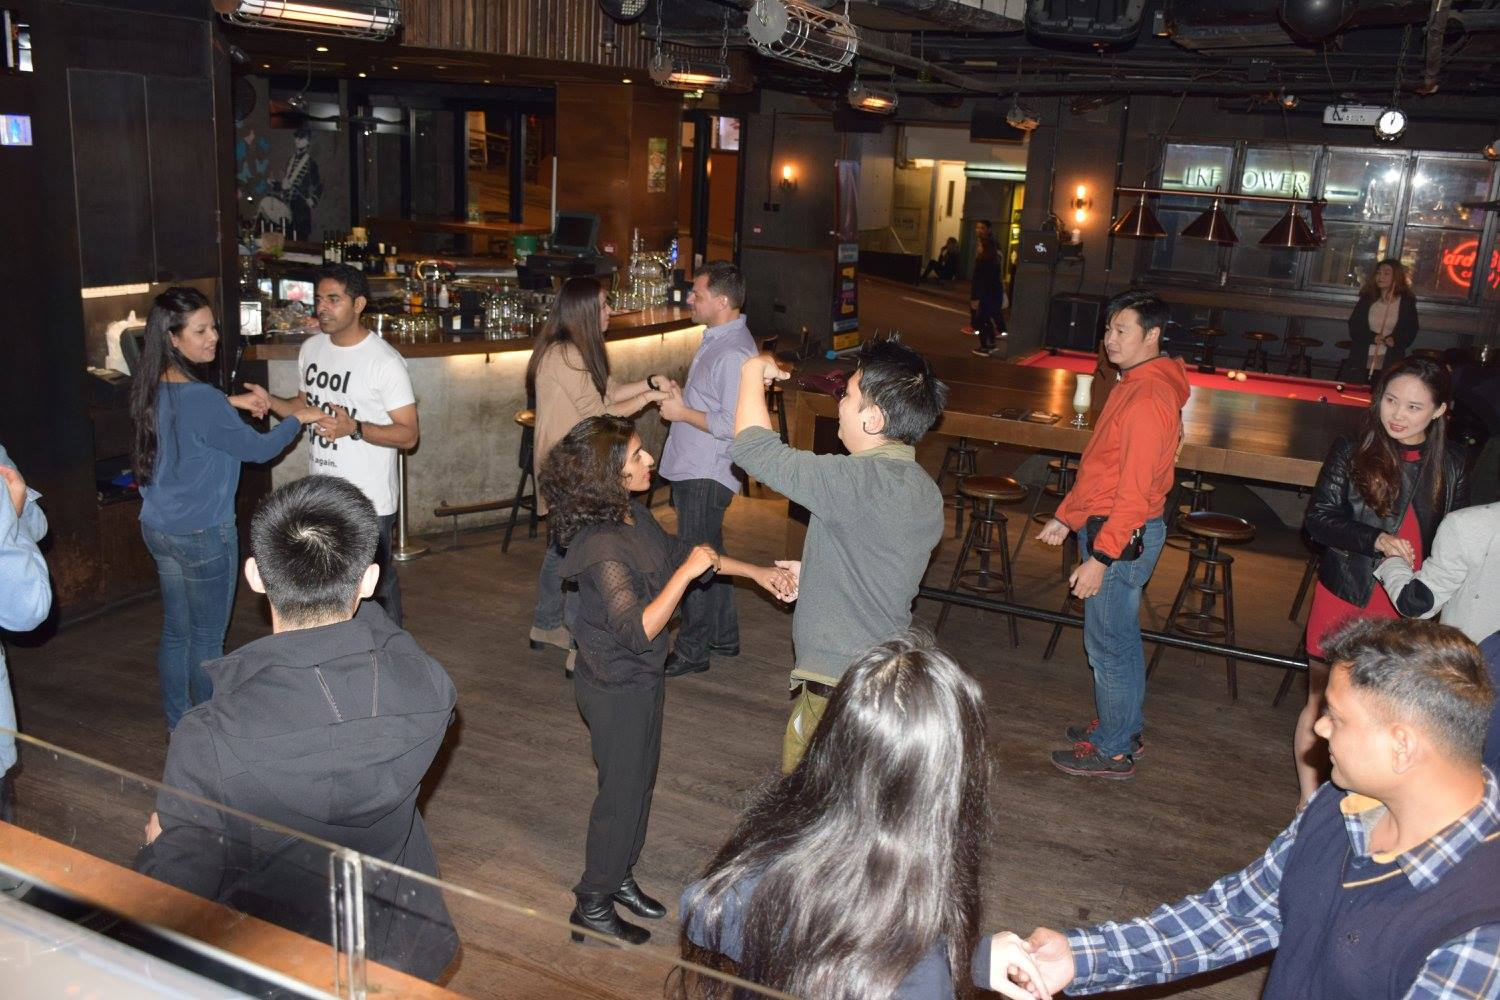 AFTER WORK SALSA PARTY AT RULA BULA: ENTRY FREE + SALSA LESSON + PARTY – TUESDAY, 1ST NOVEMBER 2016